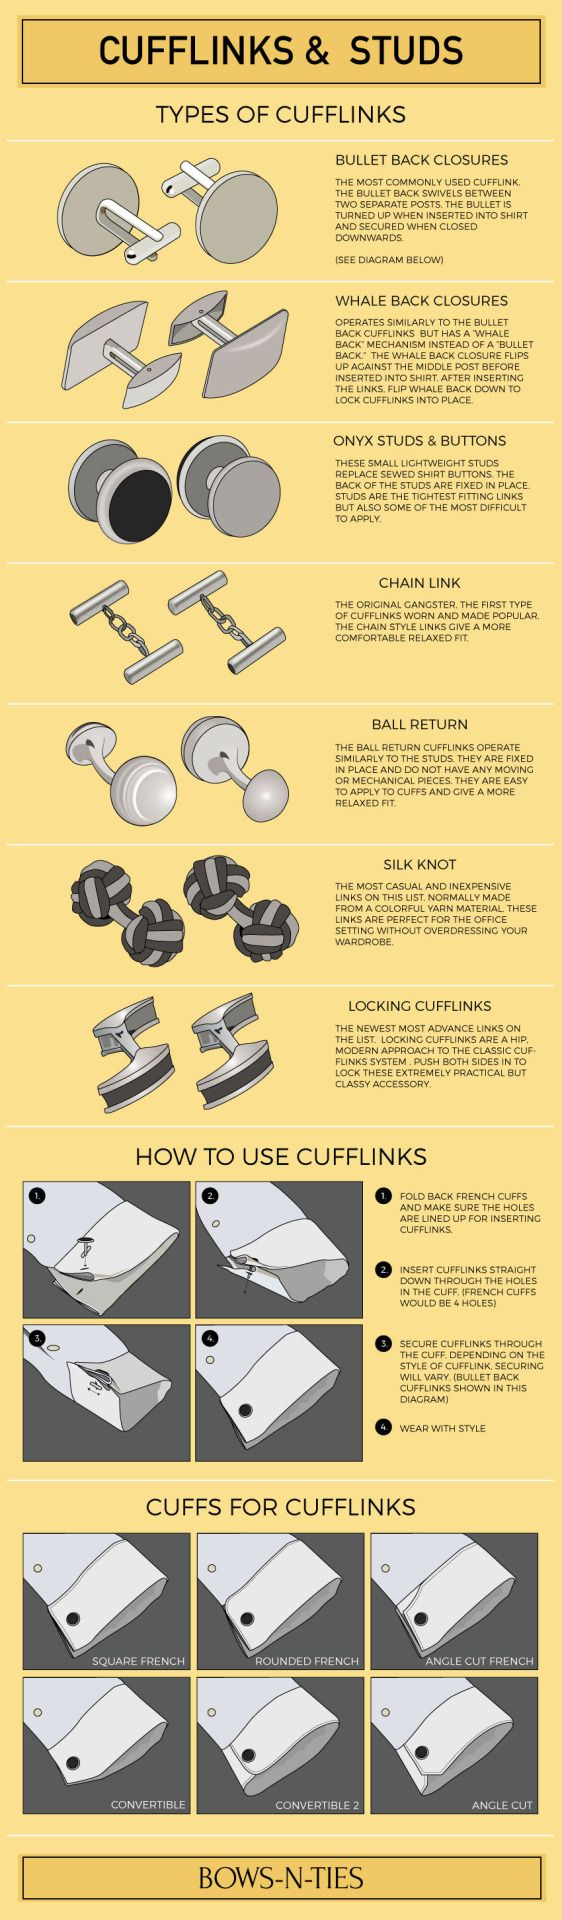 "bows-n-ties: ""Cufflinks & Bars Infographic 